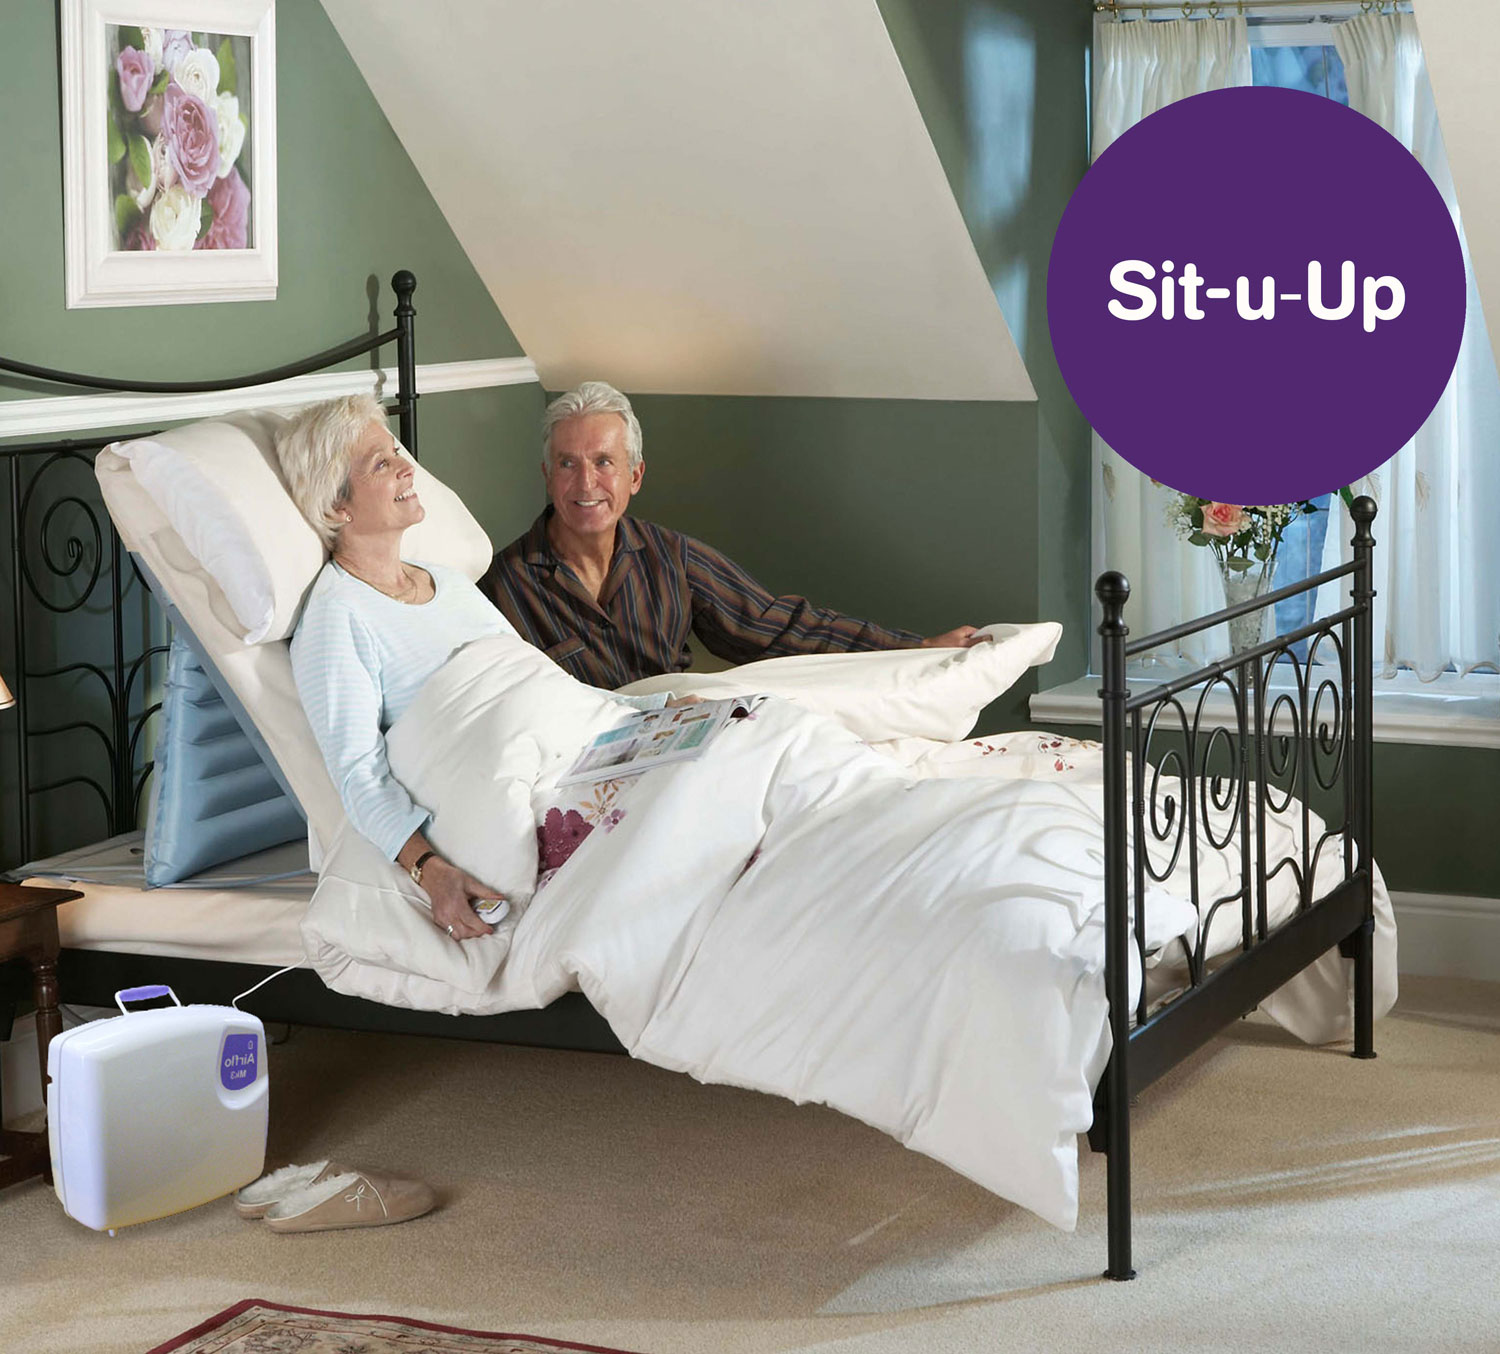 Bed Sit Up Pillow